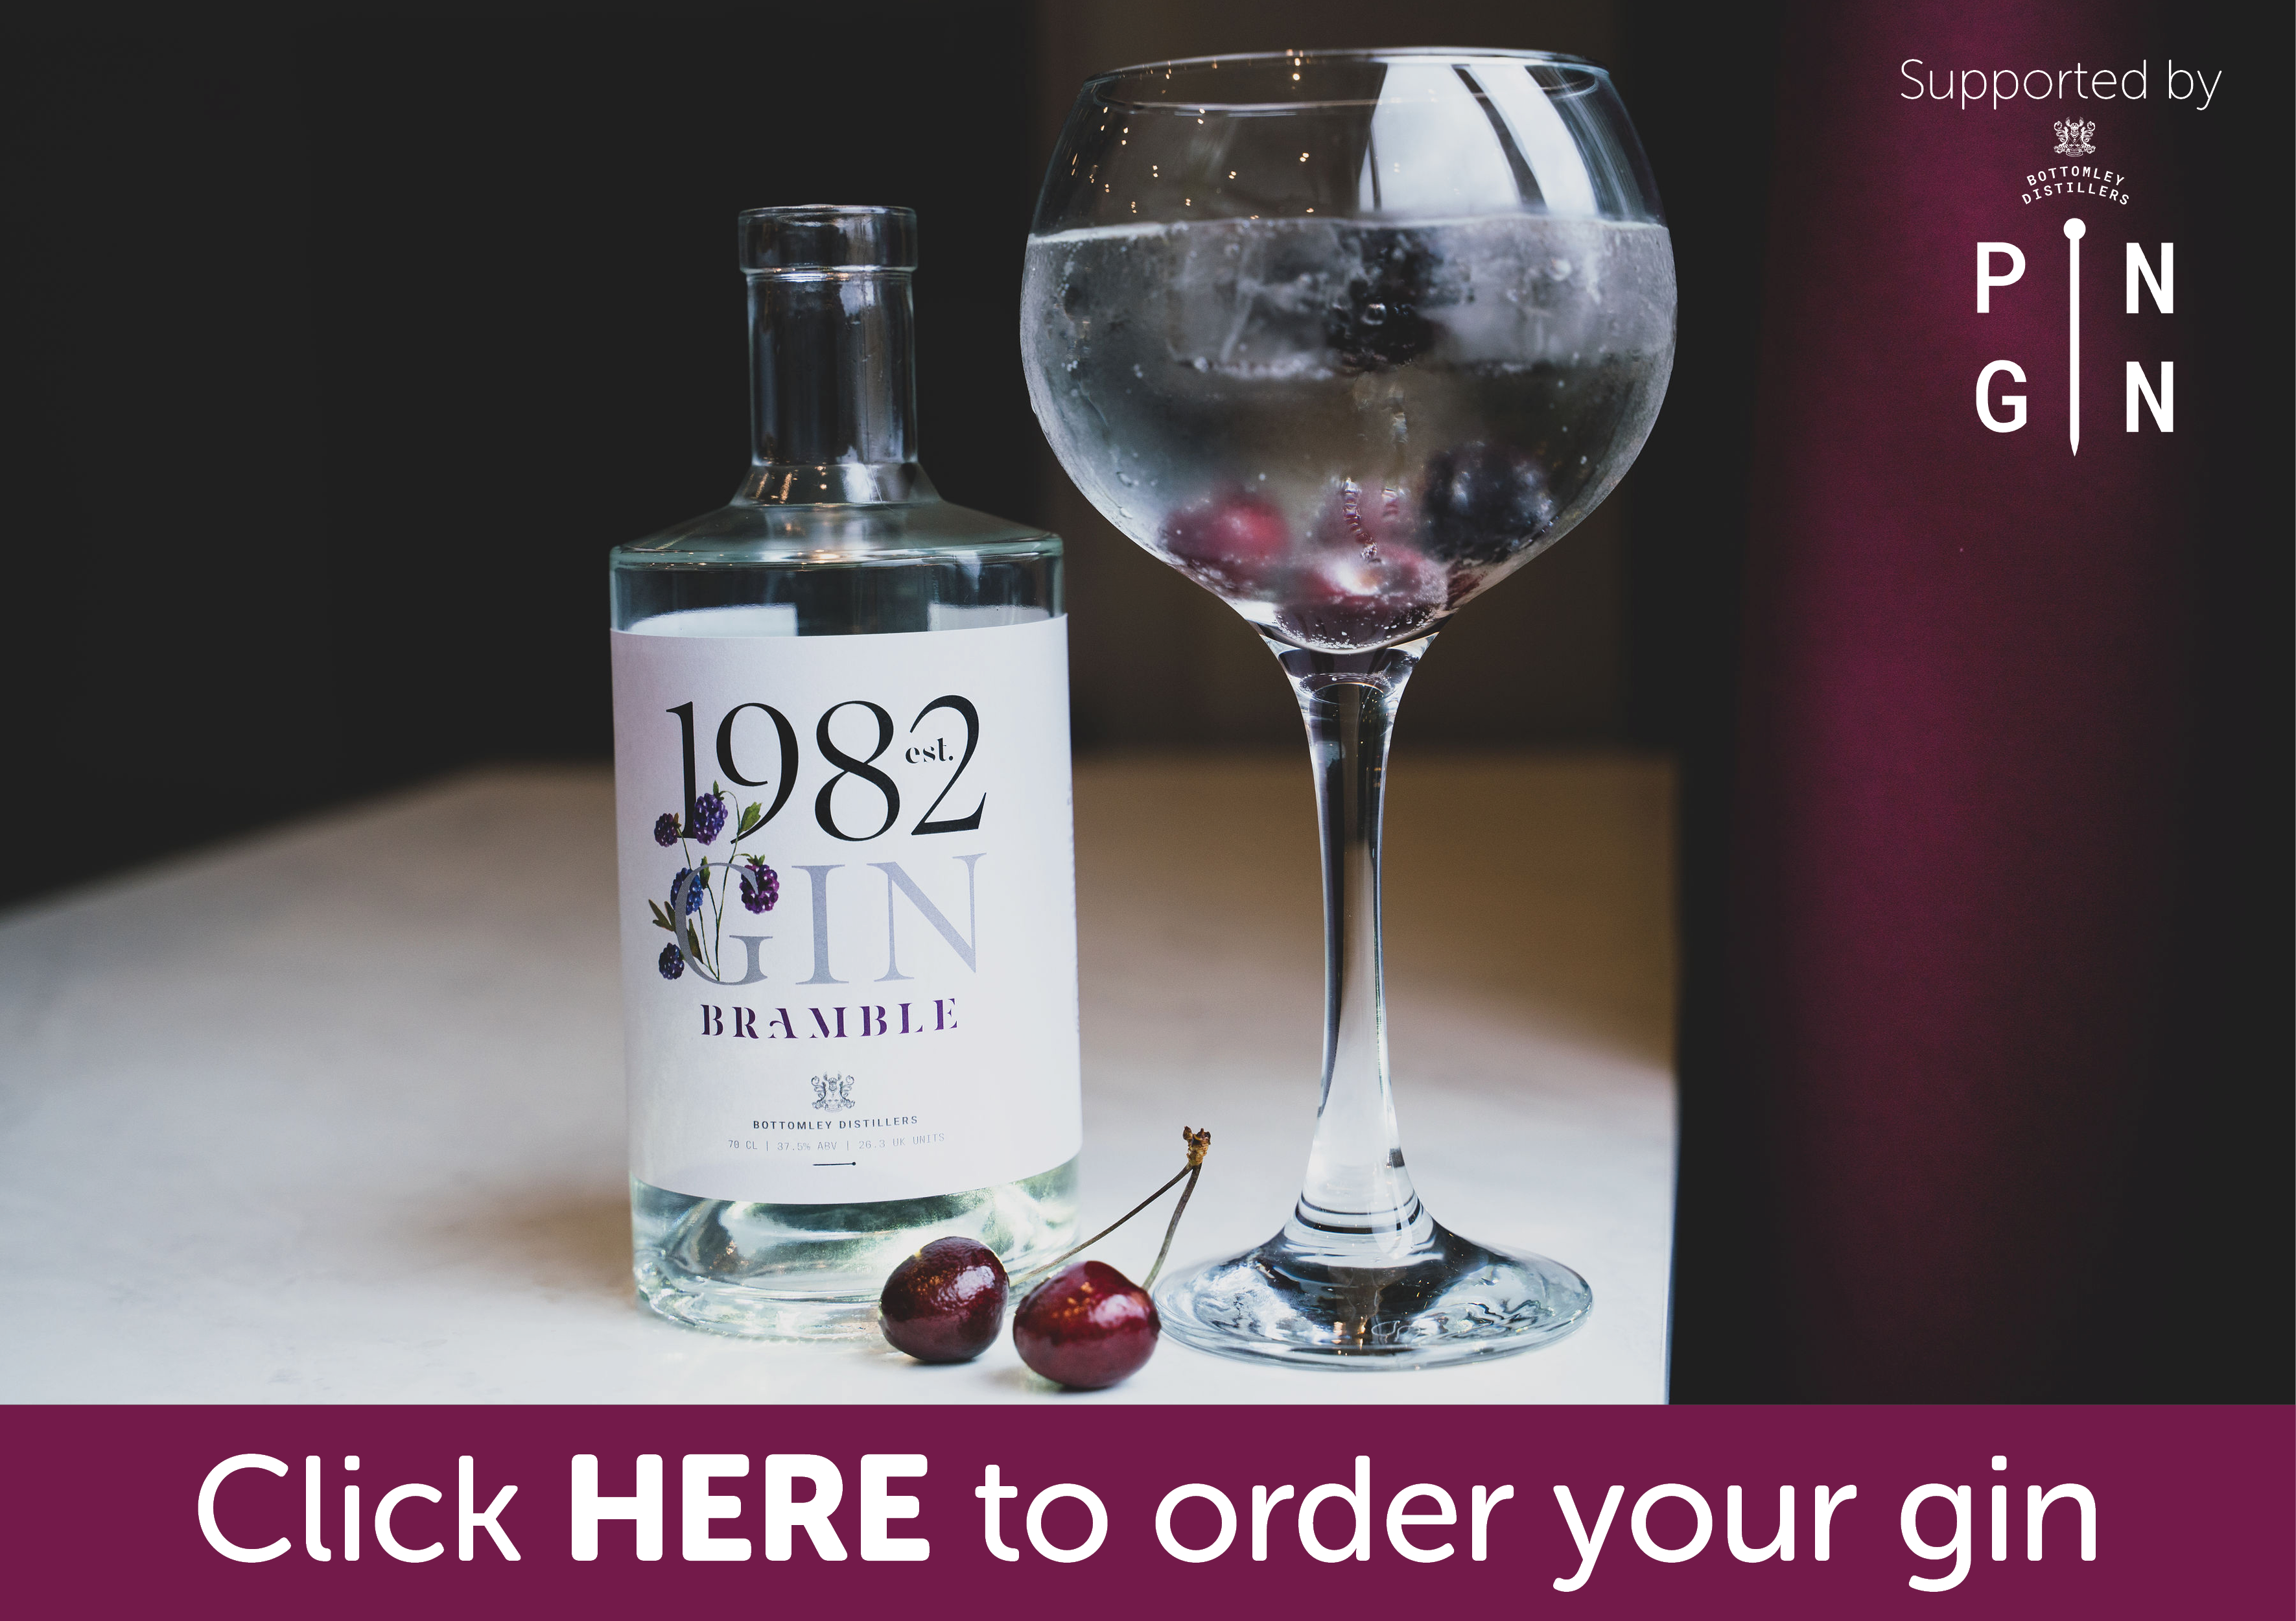 Gin ordering button